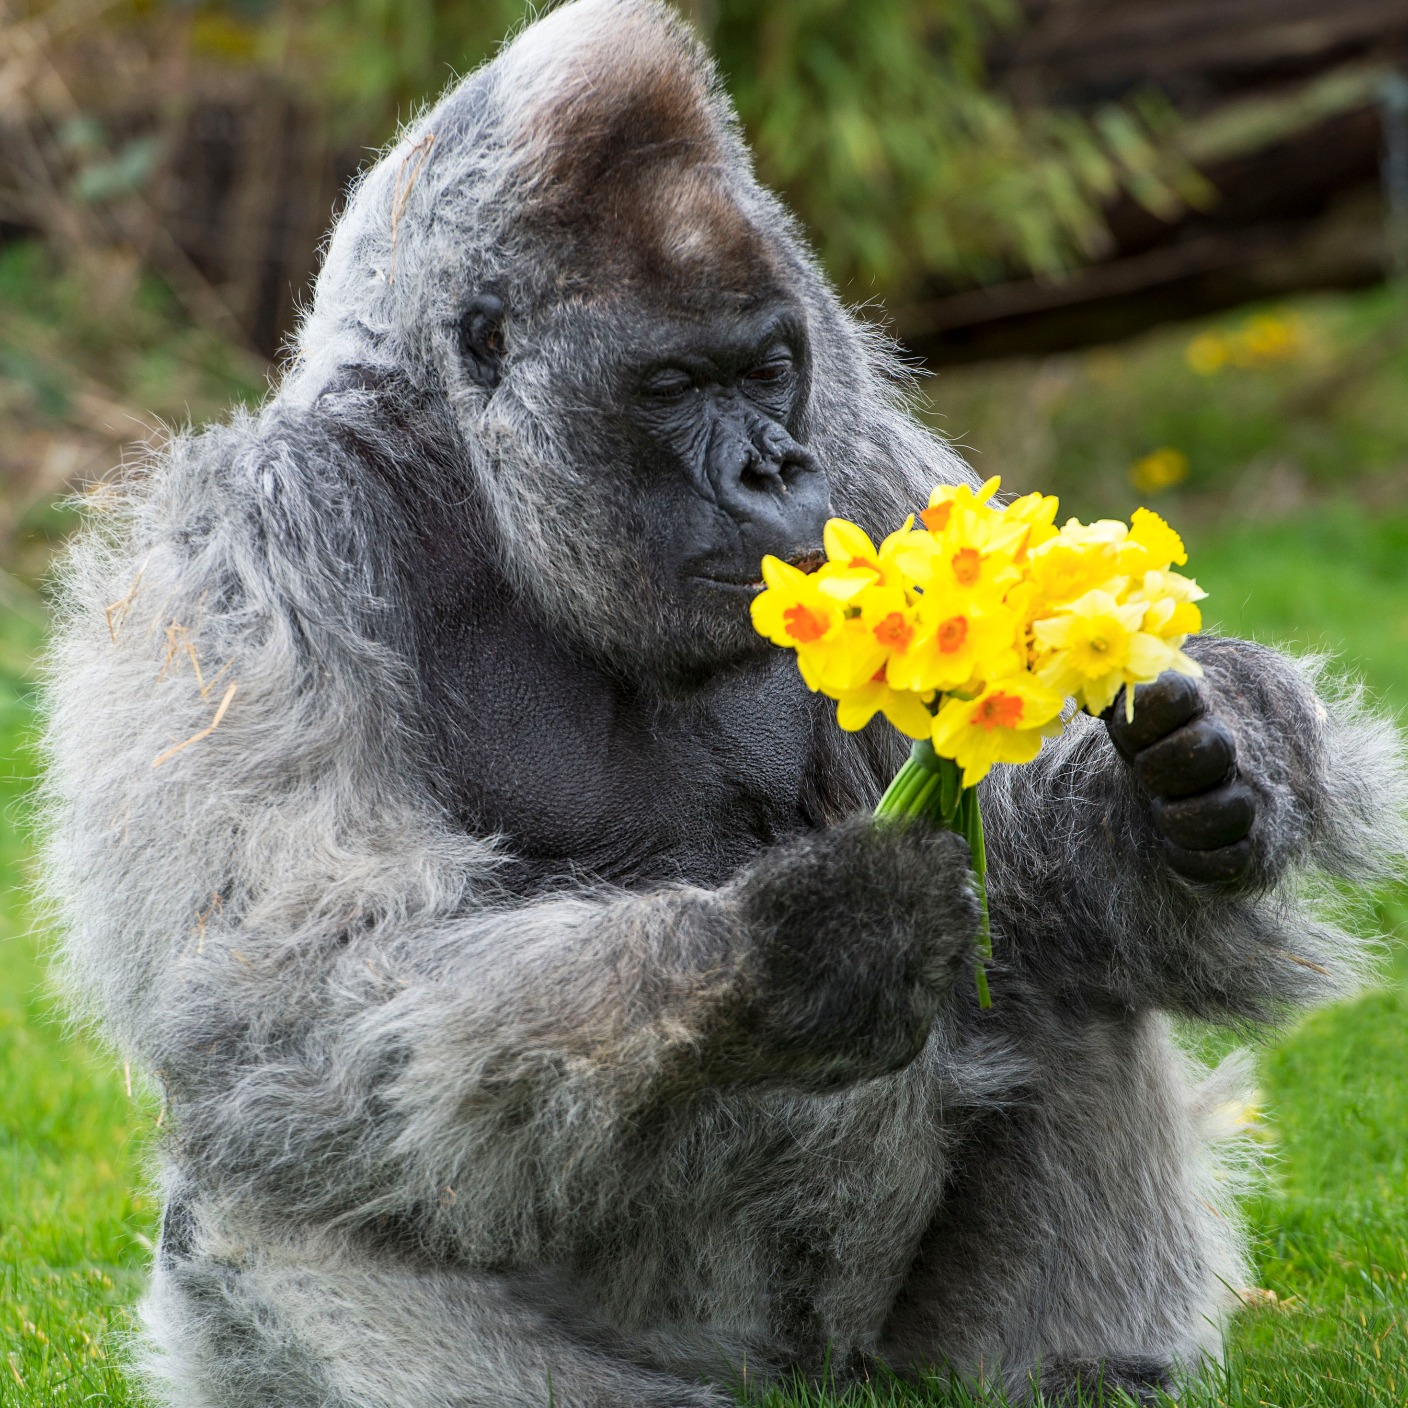 Gorilla receives flowers signalling the start of spring ...